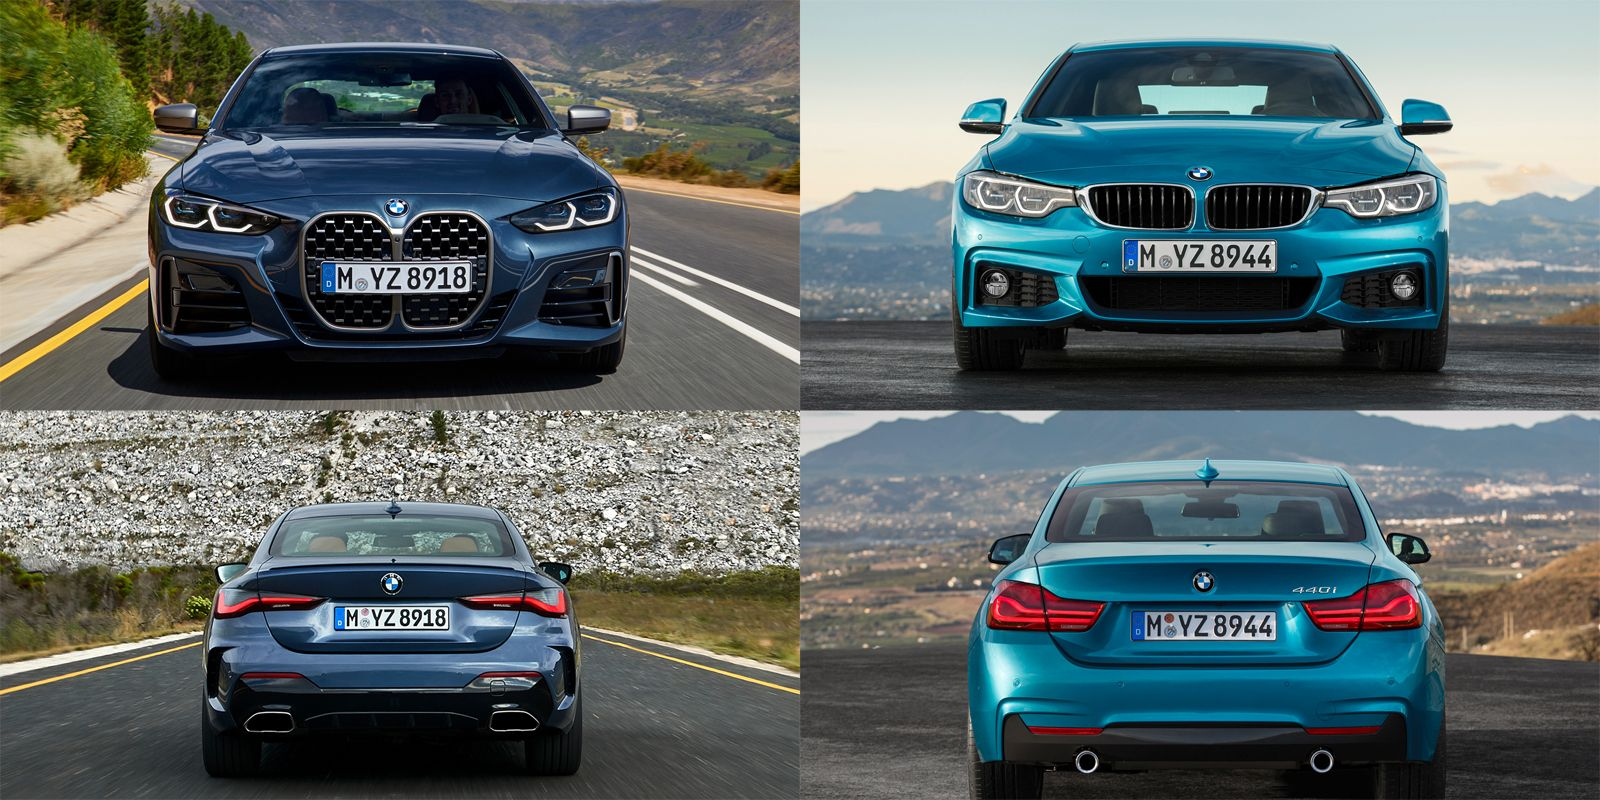 Let S Talk About The Bmw 4 Series Design